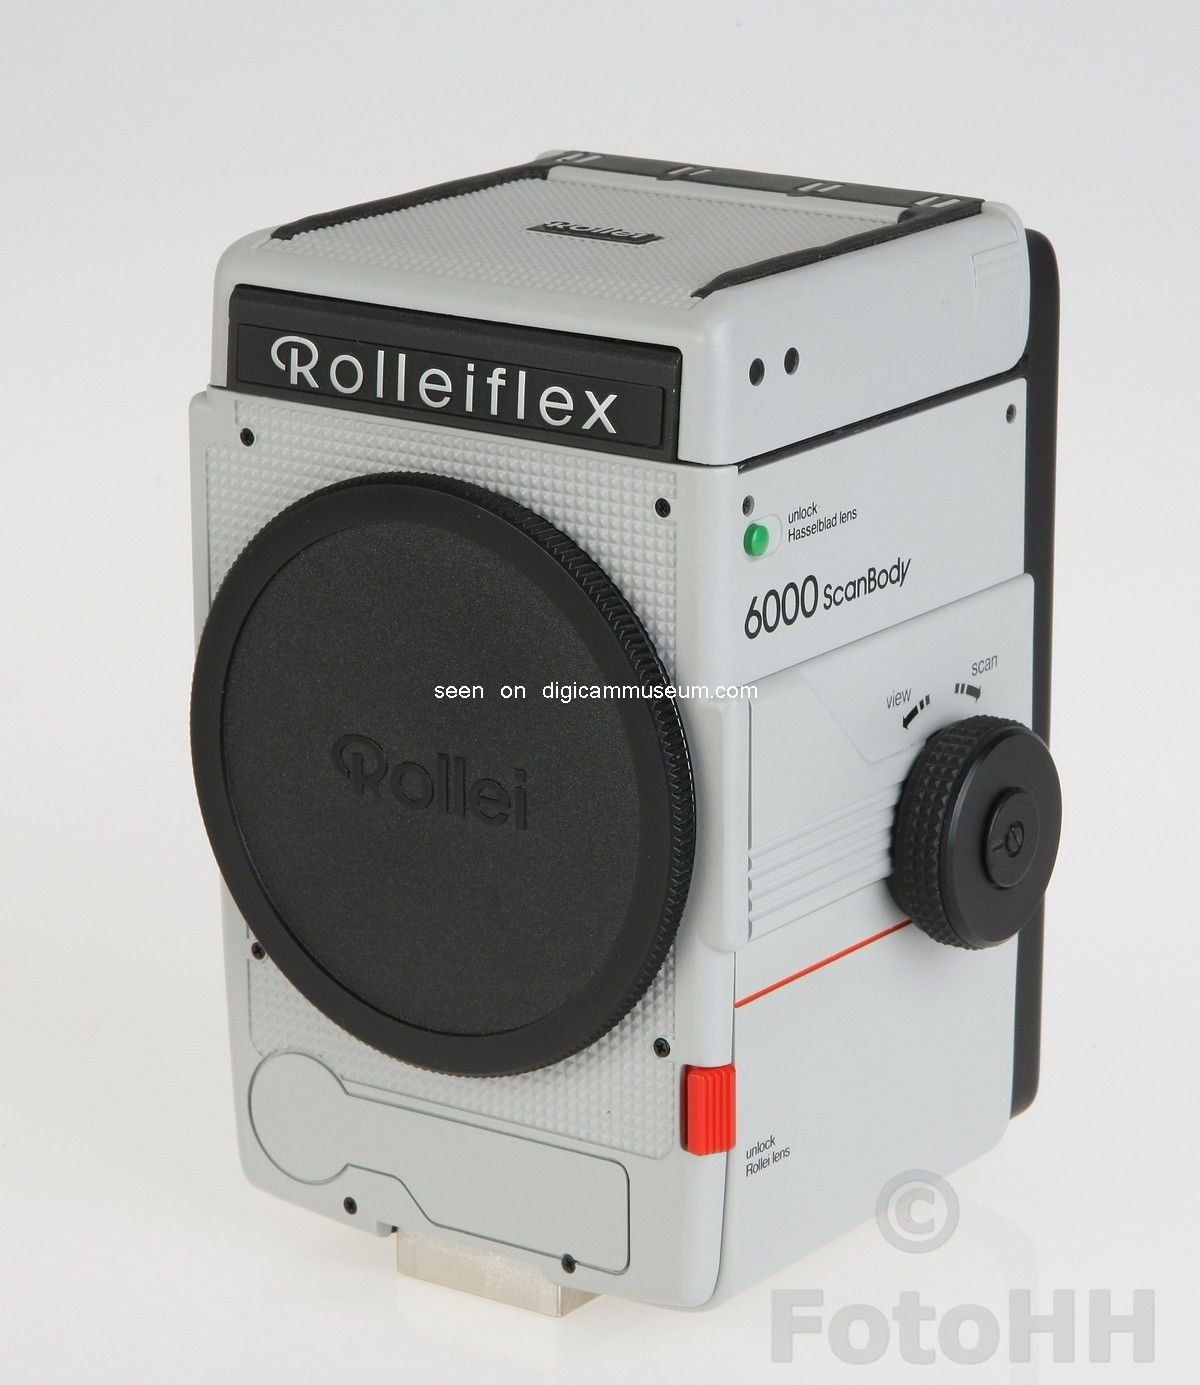 Rollei 6000 Scan Body Prototyp (1989)